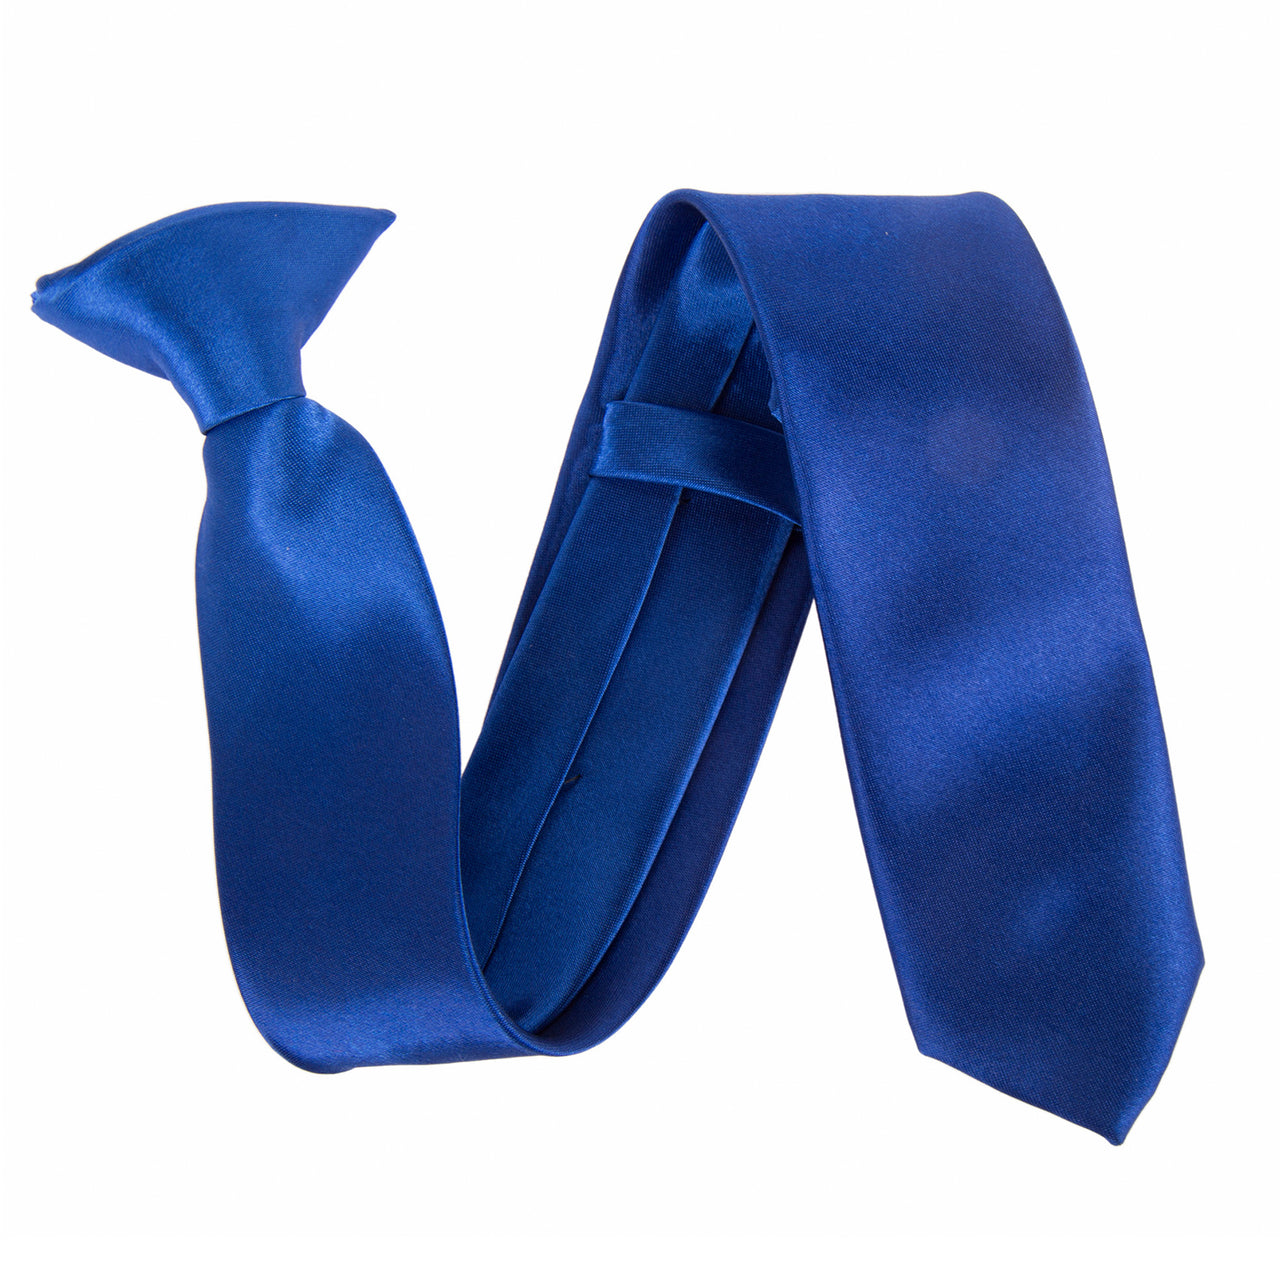 "Slim / Skinny 2"" Clip On Safety Tie - Royal Blue"